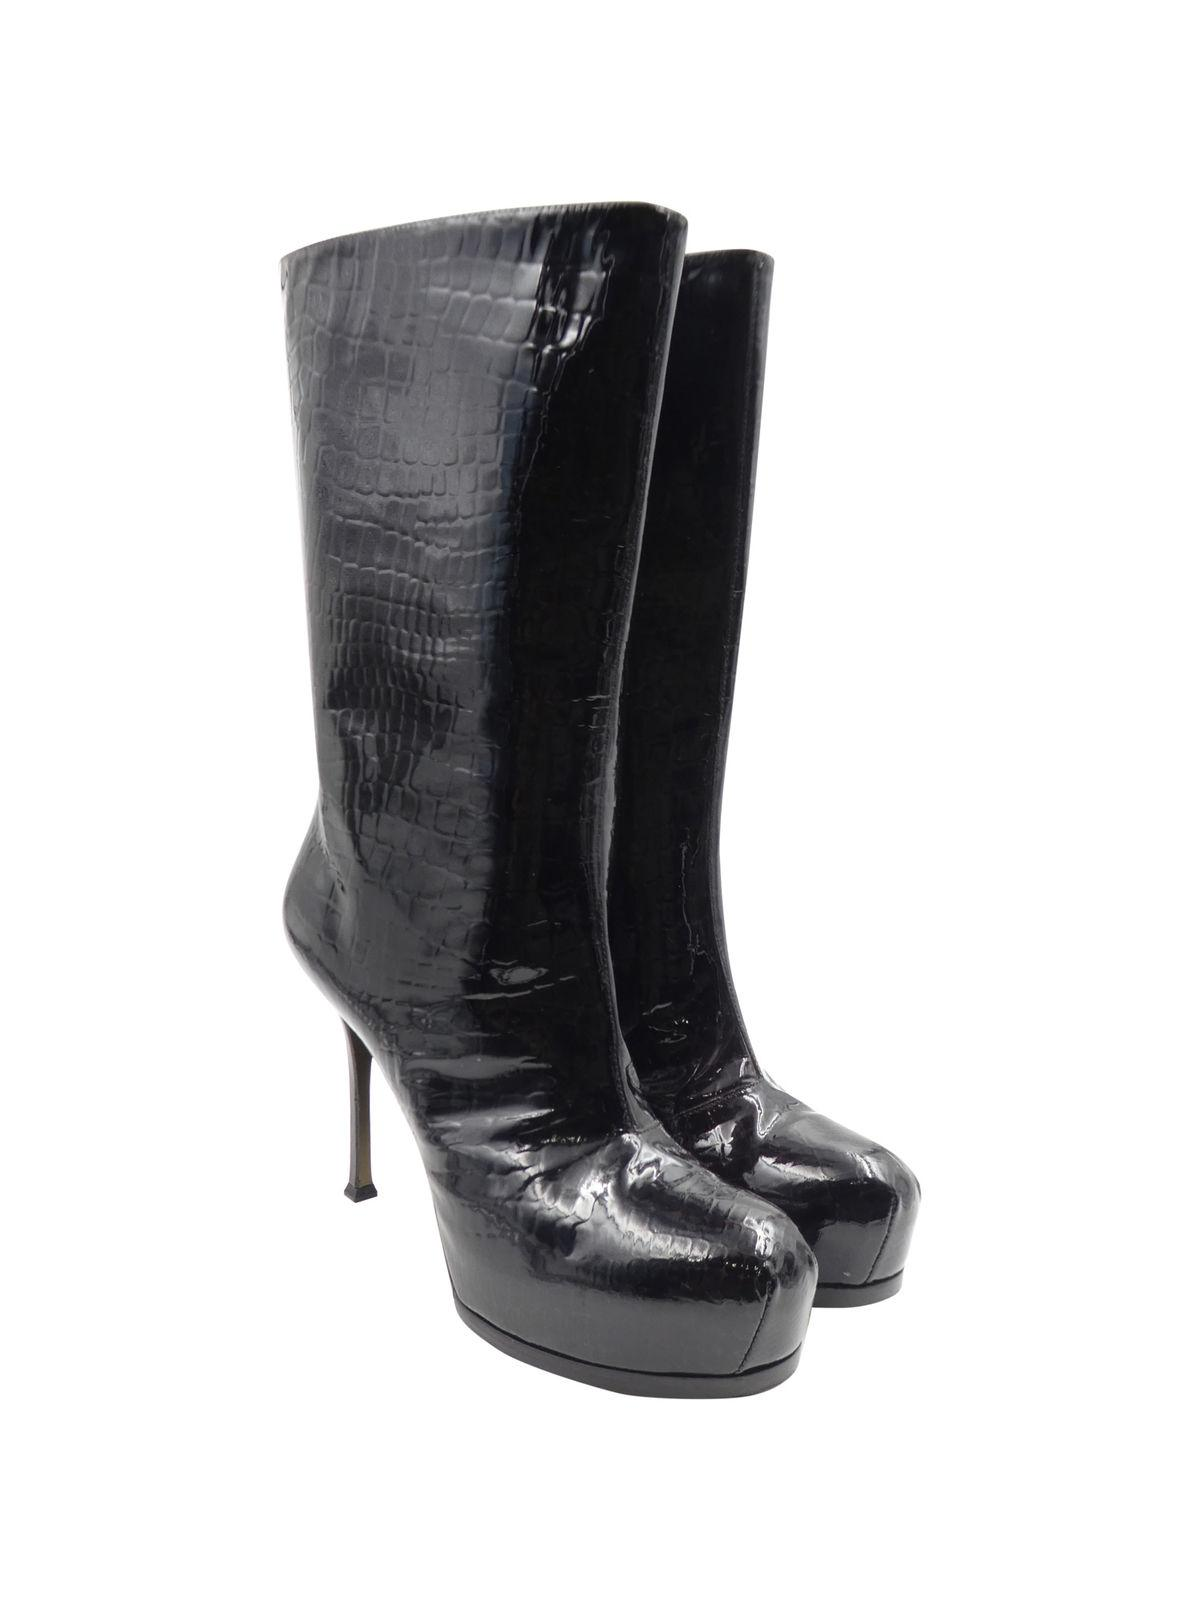 Yves Saint Laurent Embossed Platform Boots